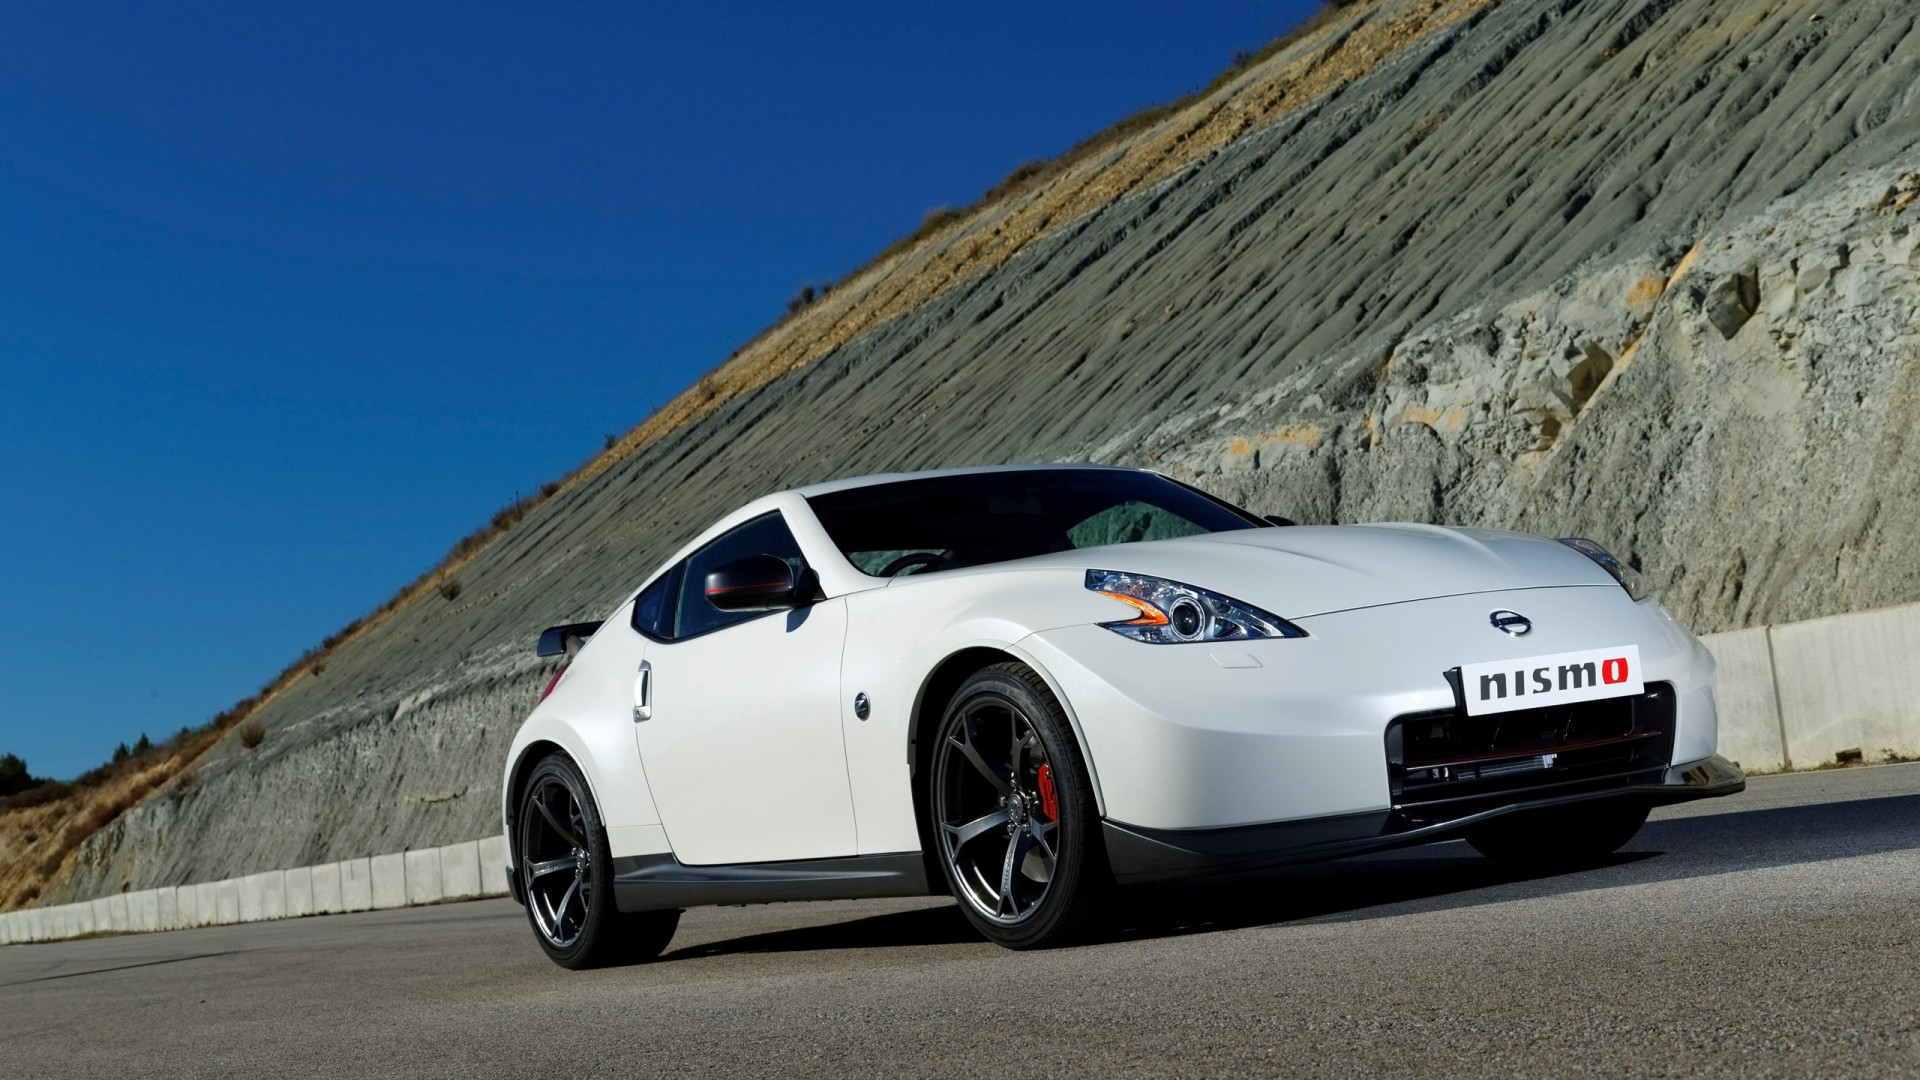 2013 370z wallpaper - photo #38